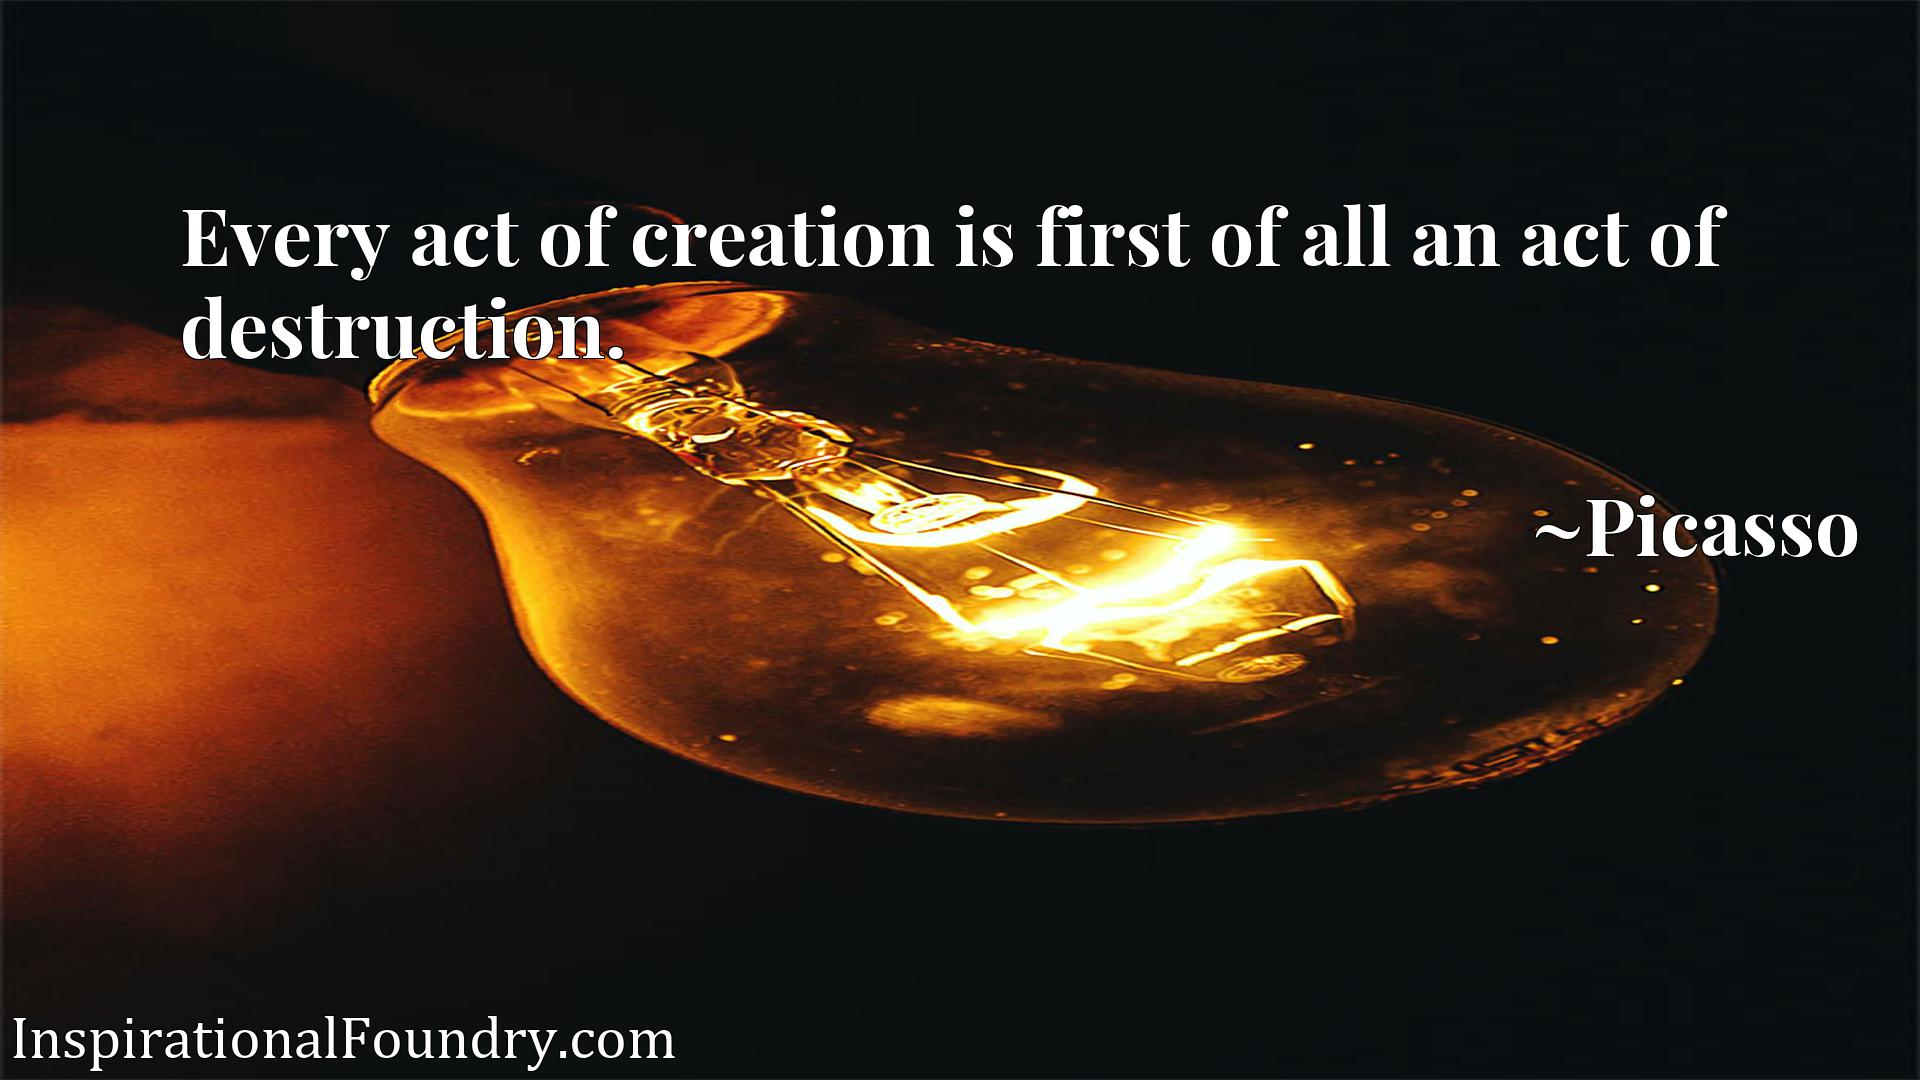 Every act of creation is first of all an act of destruction.